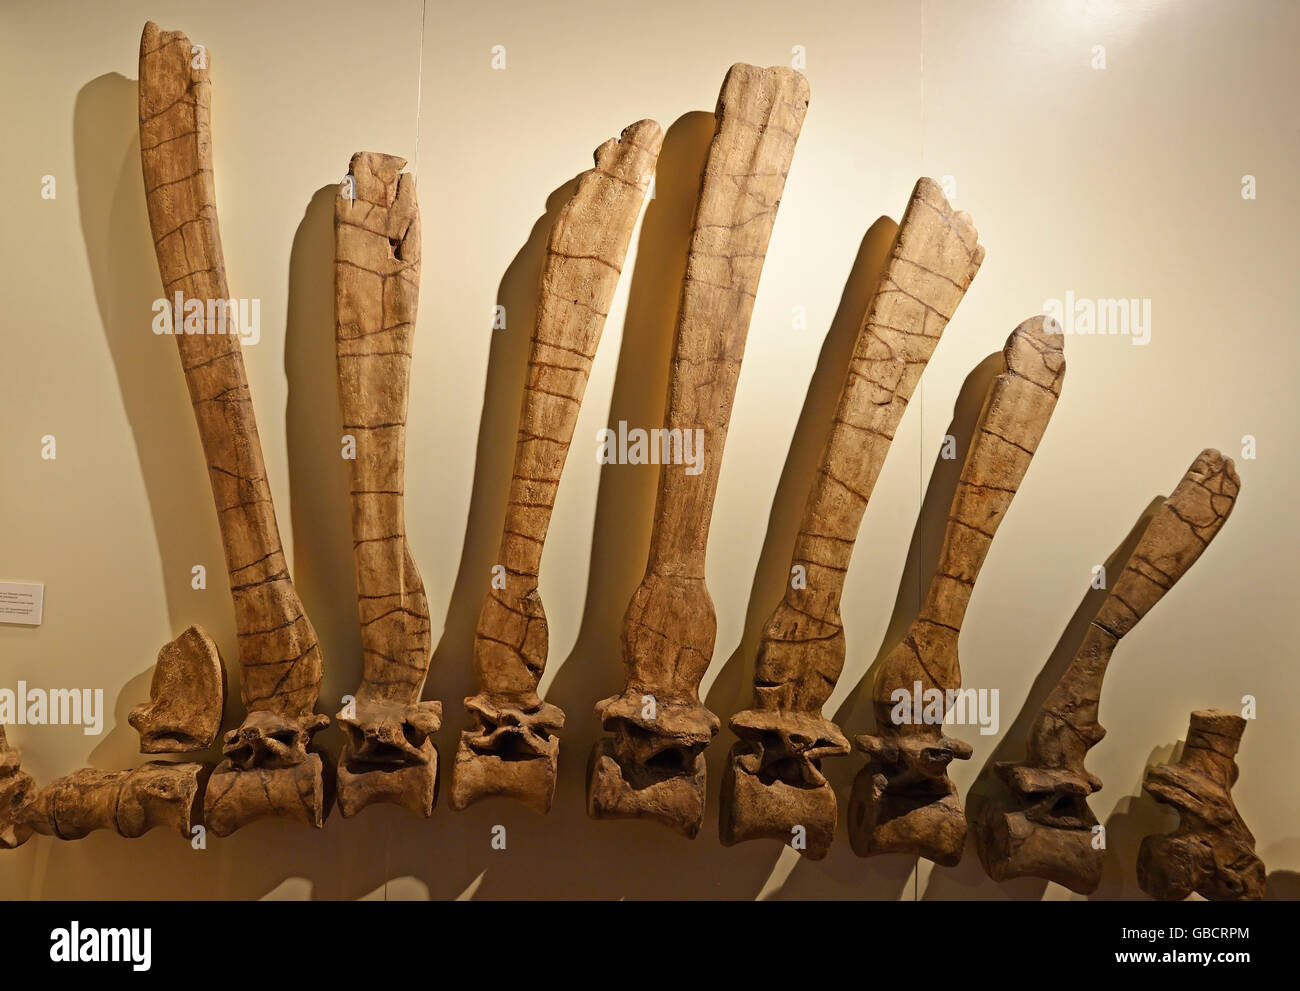 Backbone of Spinosaurus aegyptiacus, museum of natural history, Berlin, Germany - Stock Image